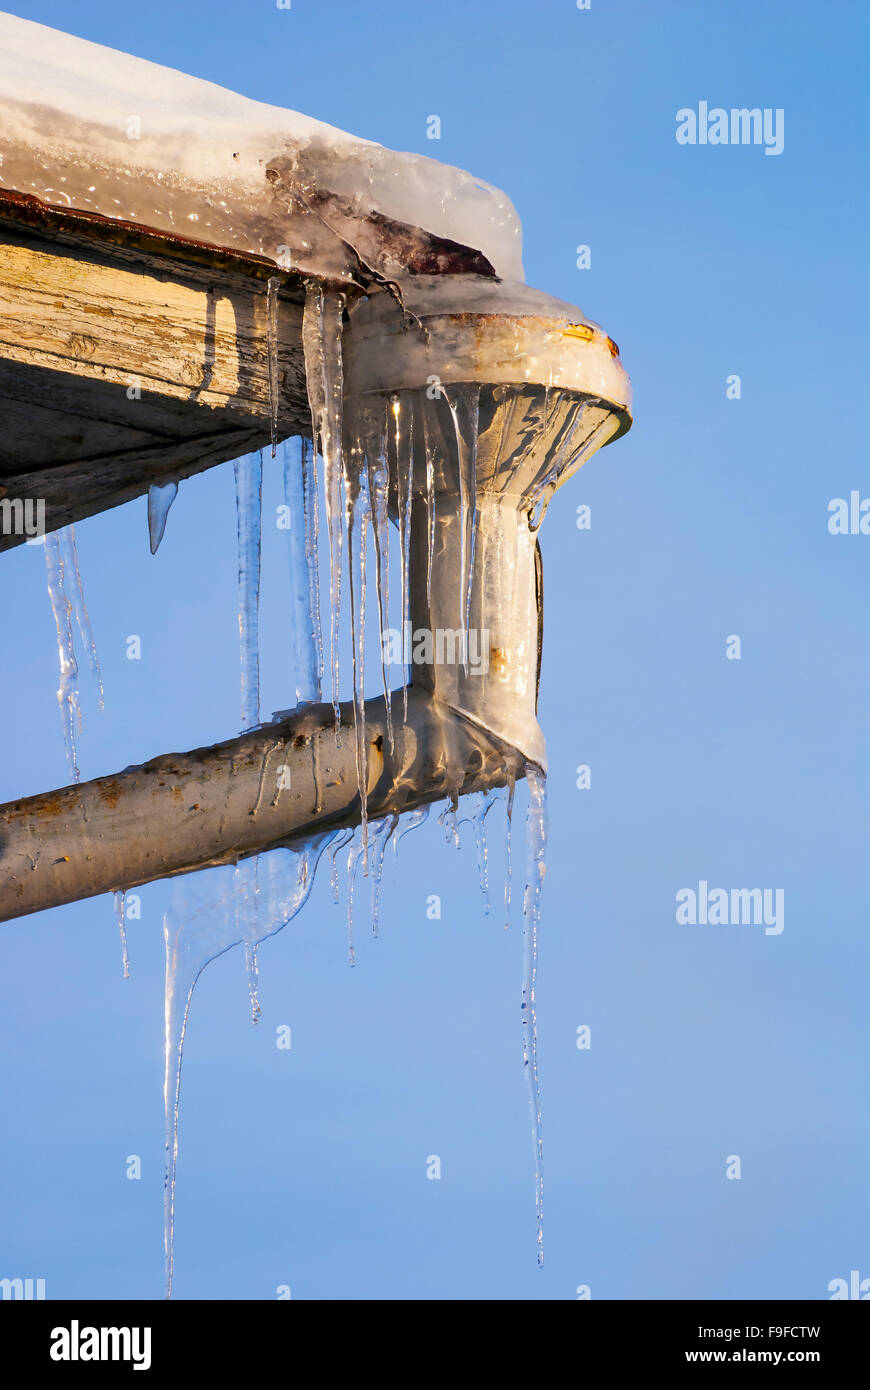 Icicles ice on corner of roof at the mouth drainpipe - Stock Image